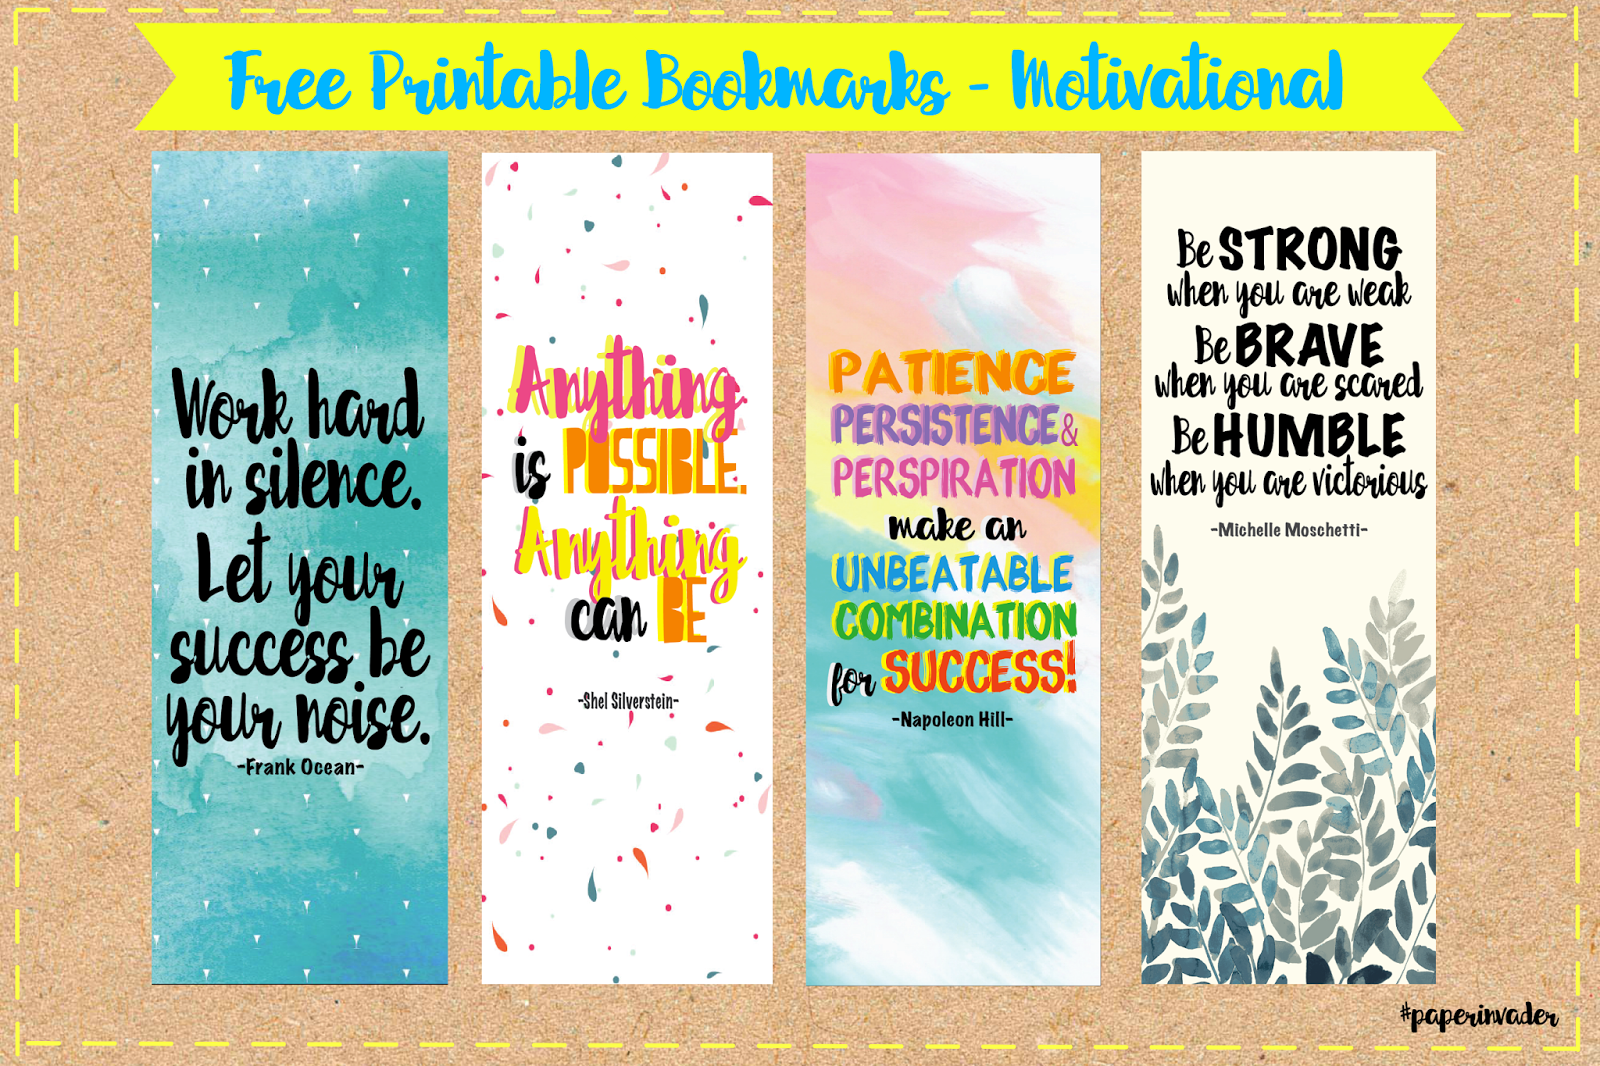 photo relating to Bookmarks Printable named Paper Invader: Absolutely free Printable Bookmarks - Motivational